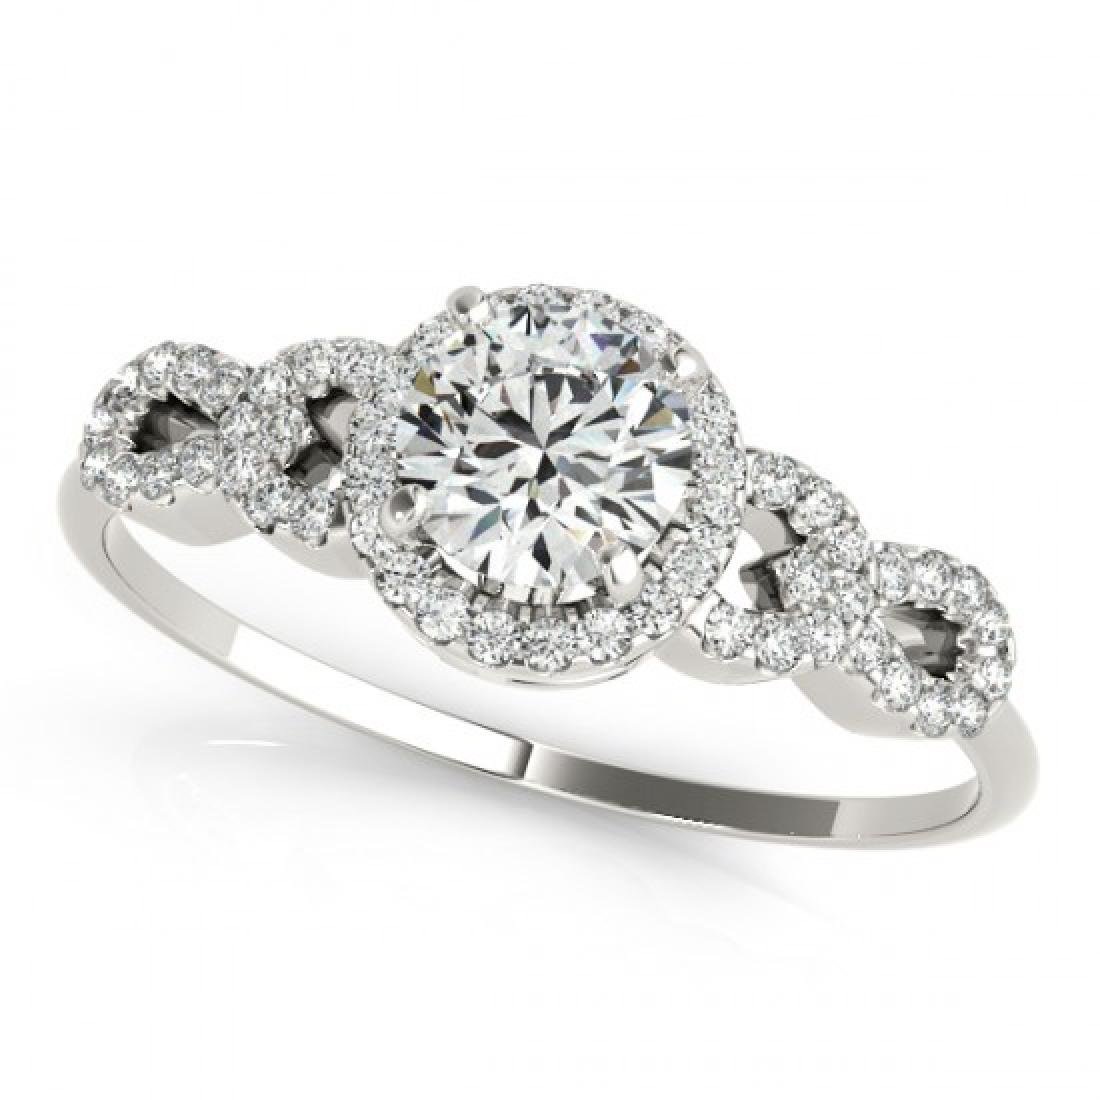 1.33 CTW Certified VS/SI Diamond Solitaire Ring 14K